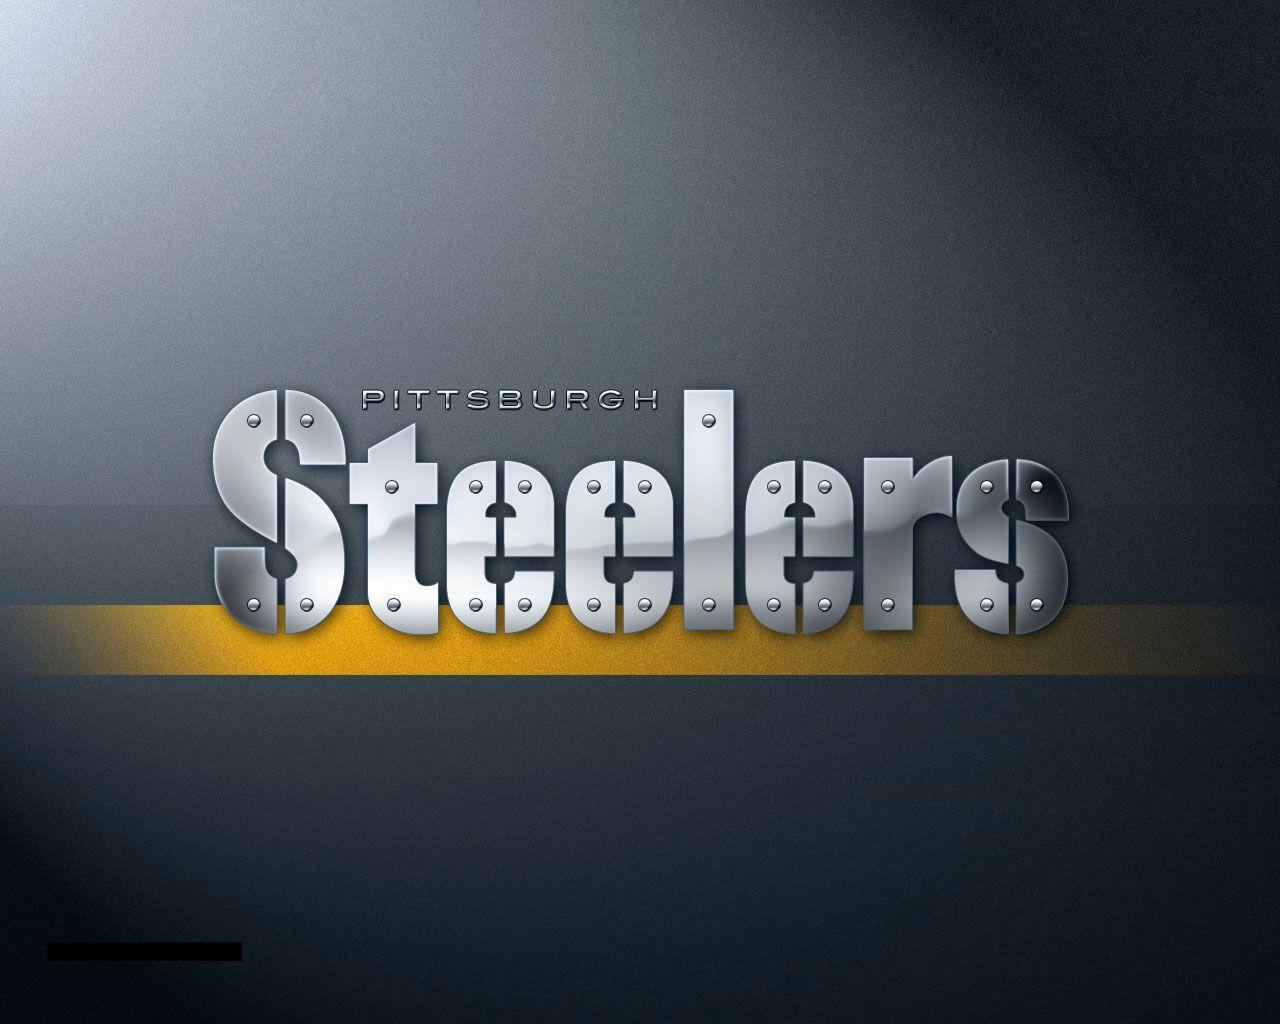 Steelers Wallpapers Hd 2014 wallpapers